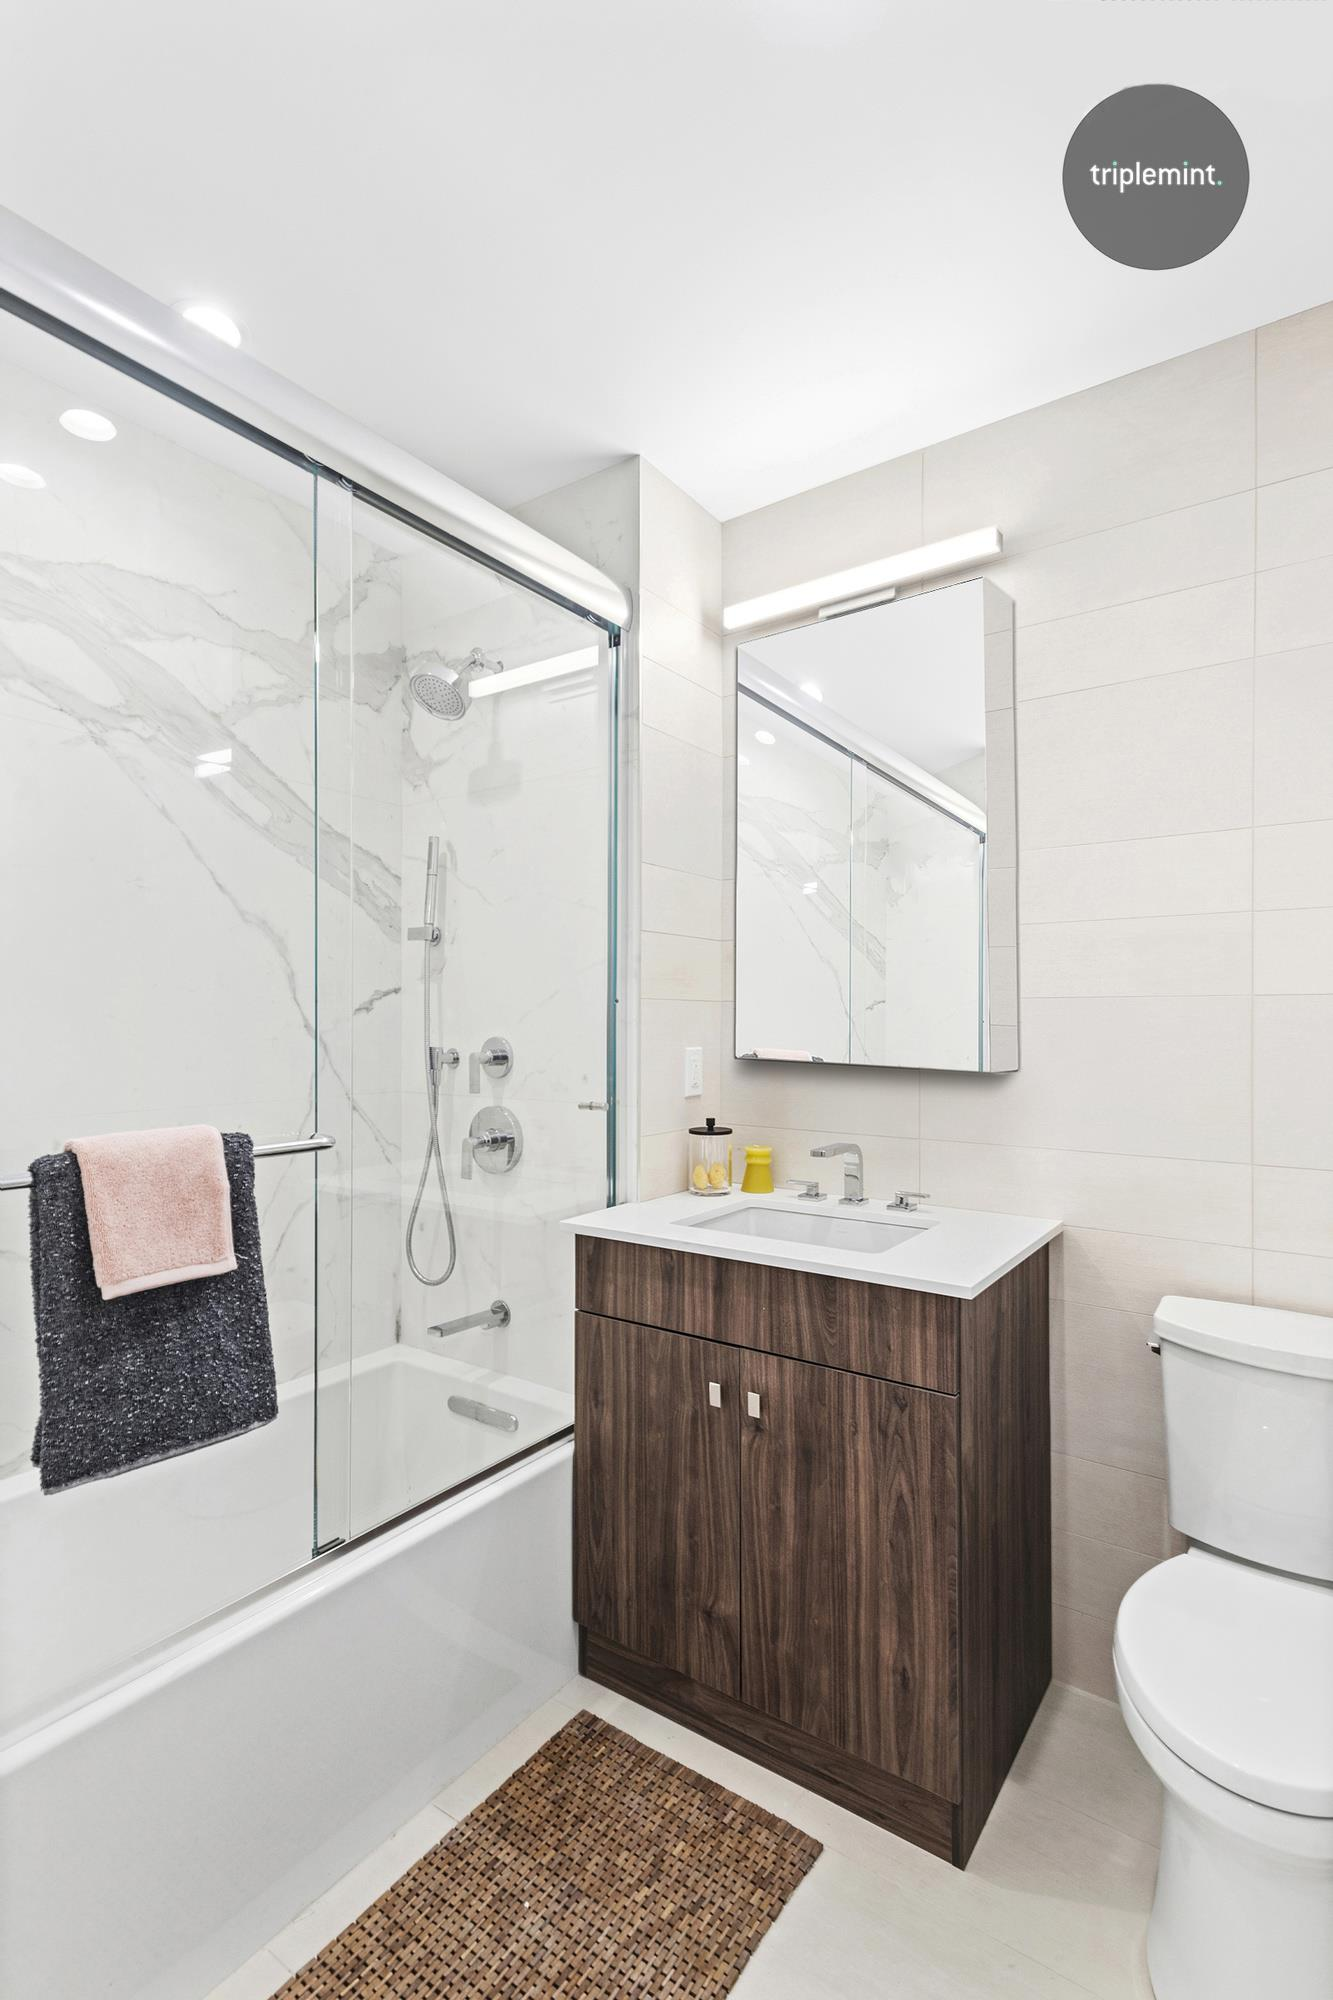 Apartment for sale at 23-43 31st Road, Apt 2-C